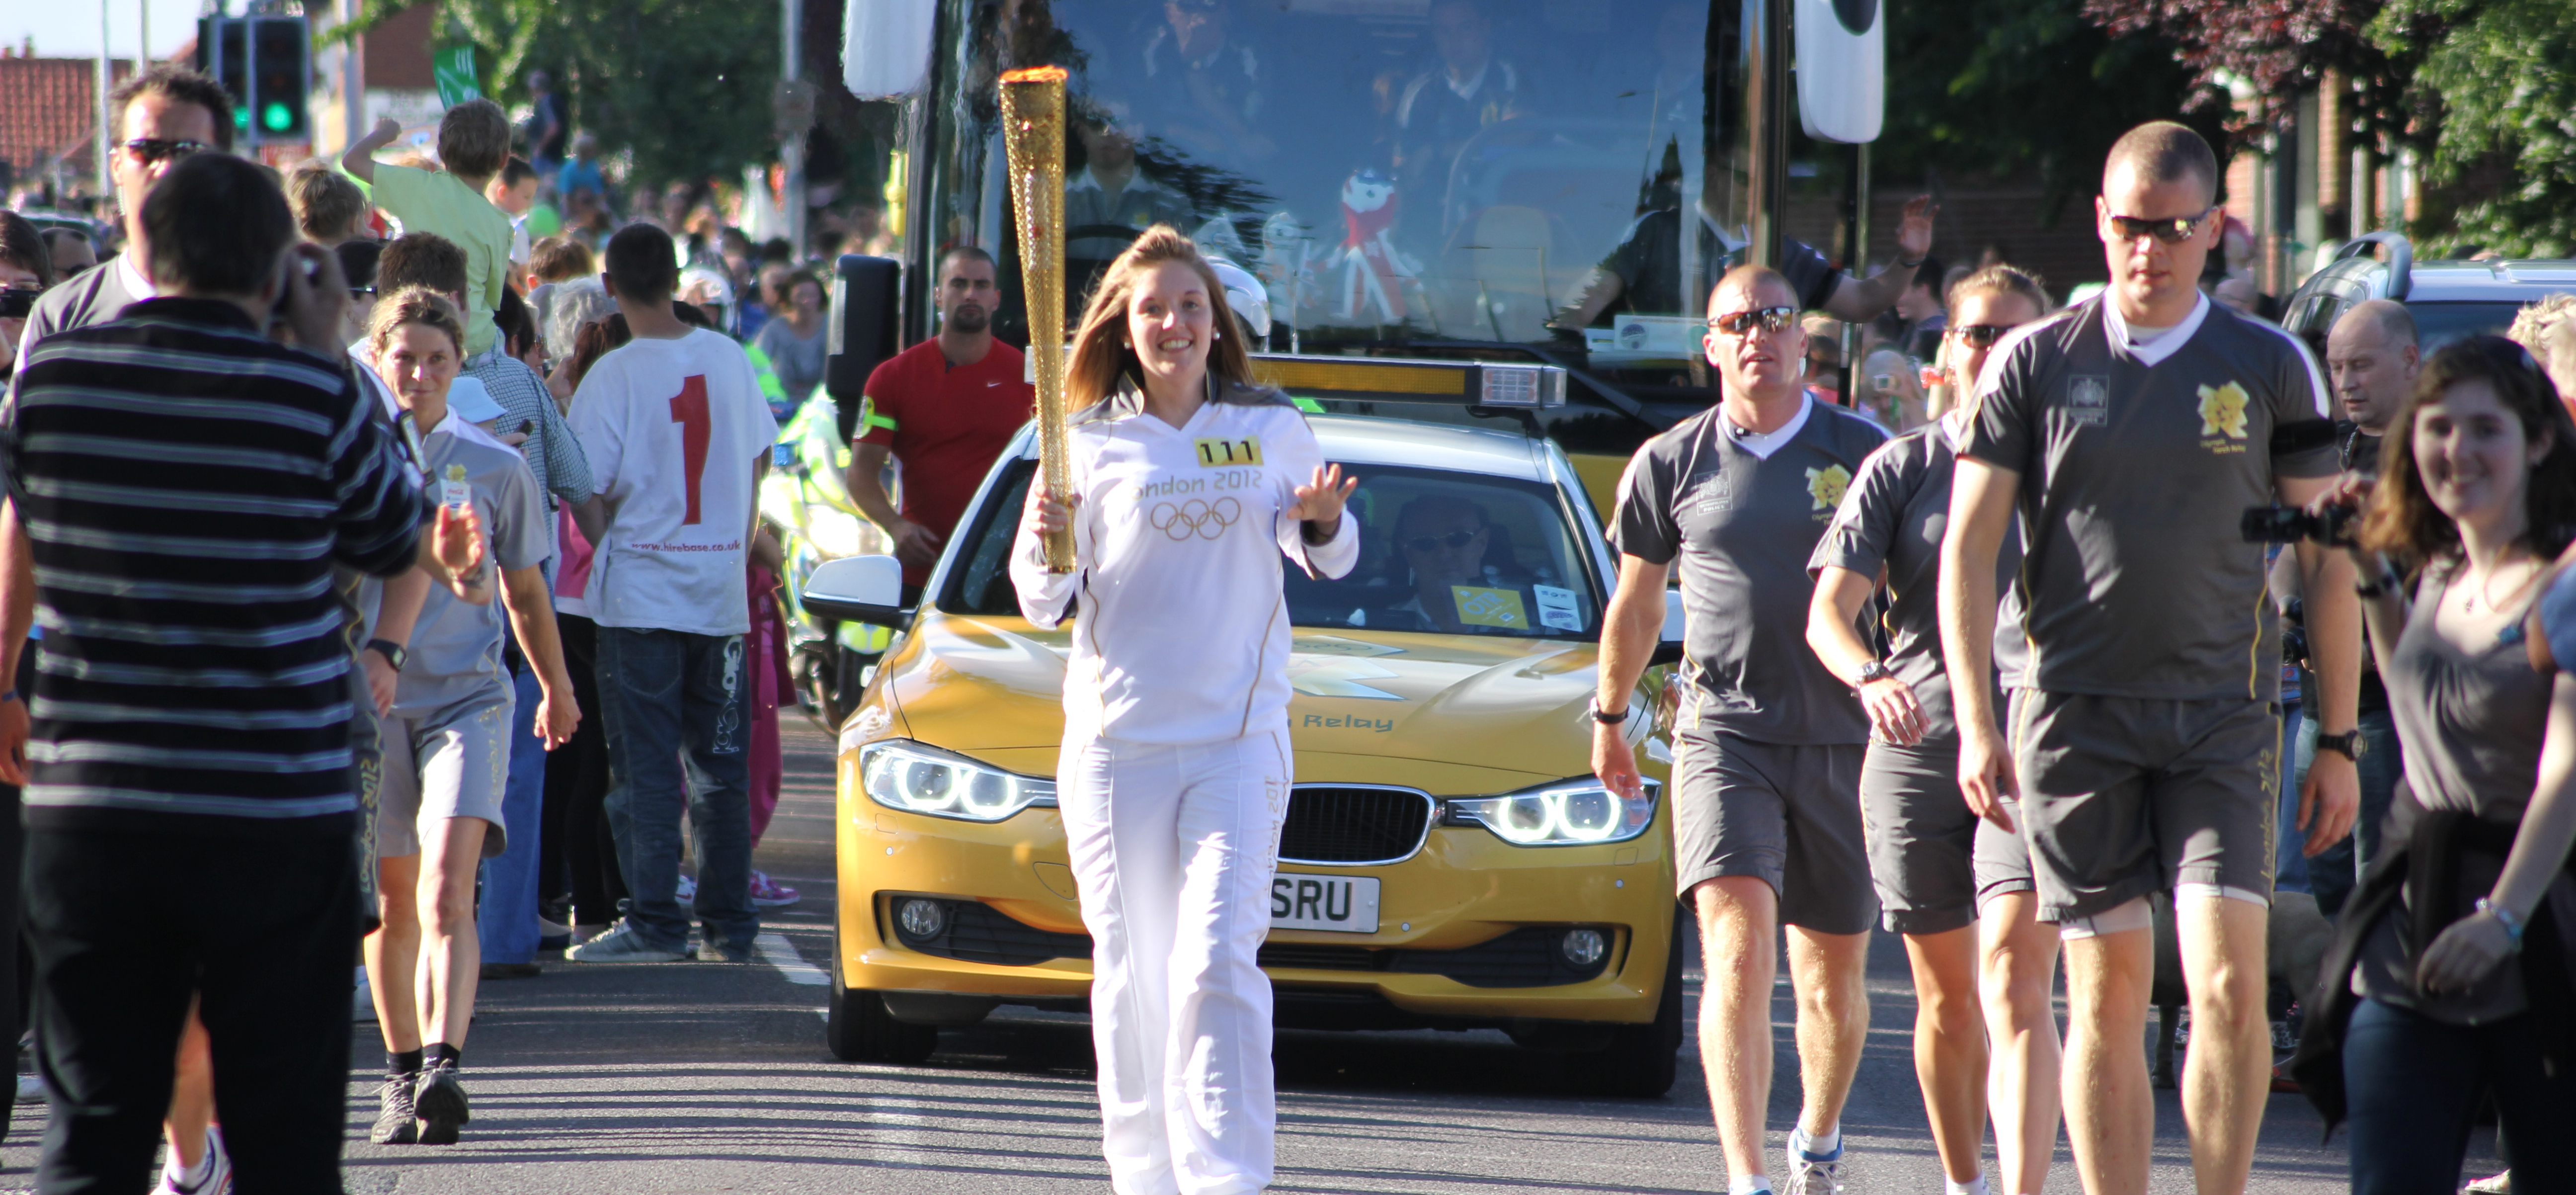 Olympic Torch comes to Hellesdon